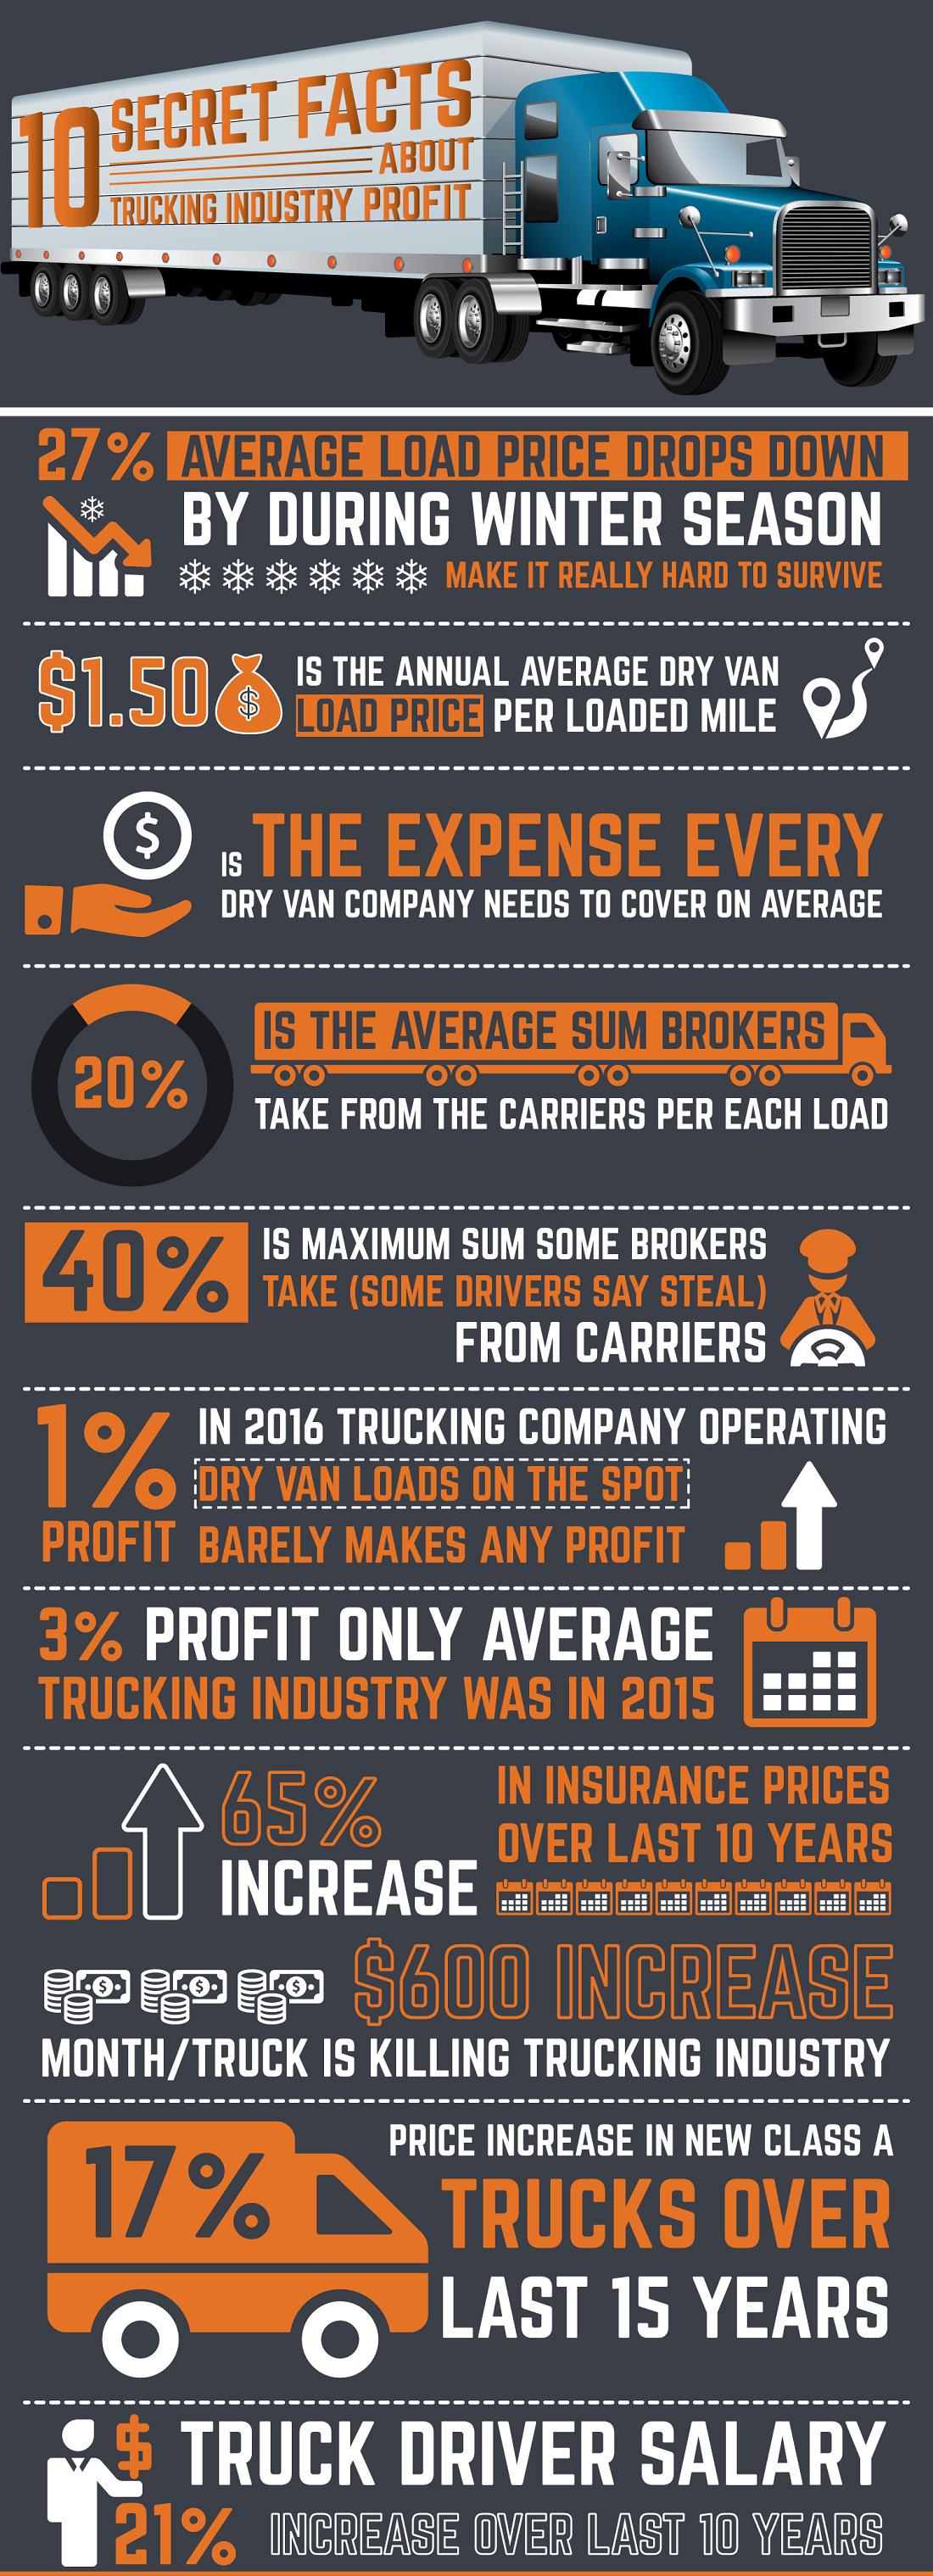 10 Secret Facts About Trucking Industry Profit